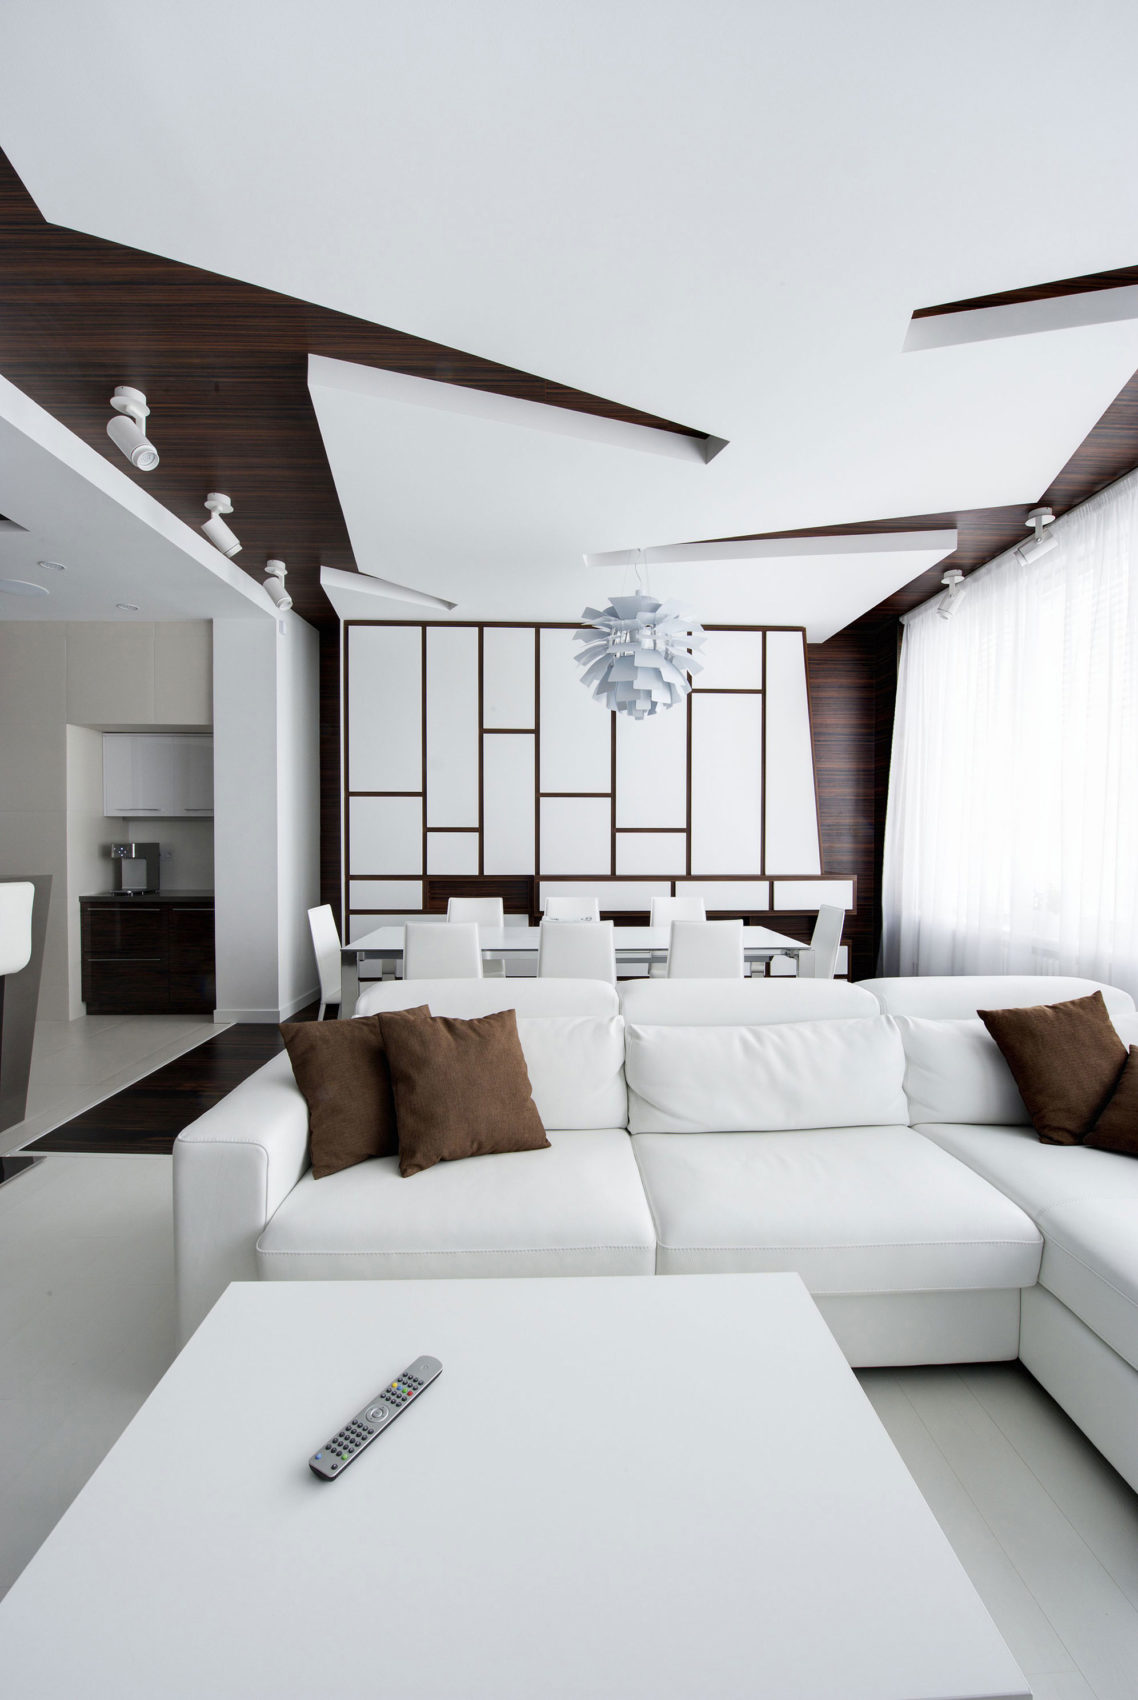 Apartment Renovation in Moscow by Vladimir Malashonok (2)